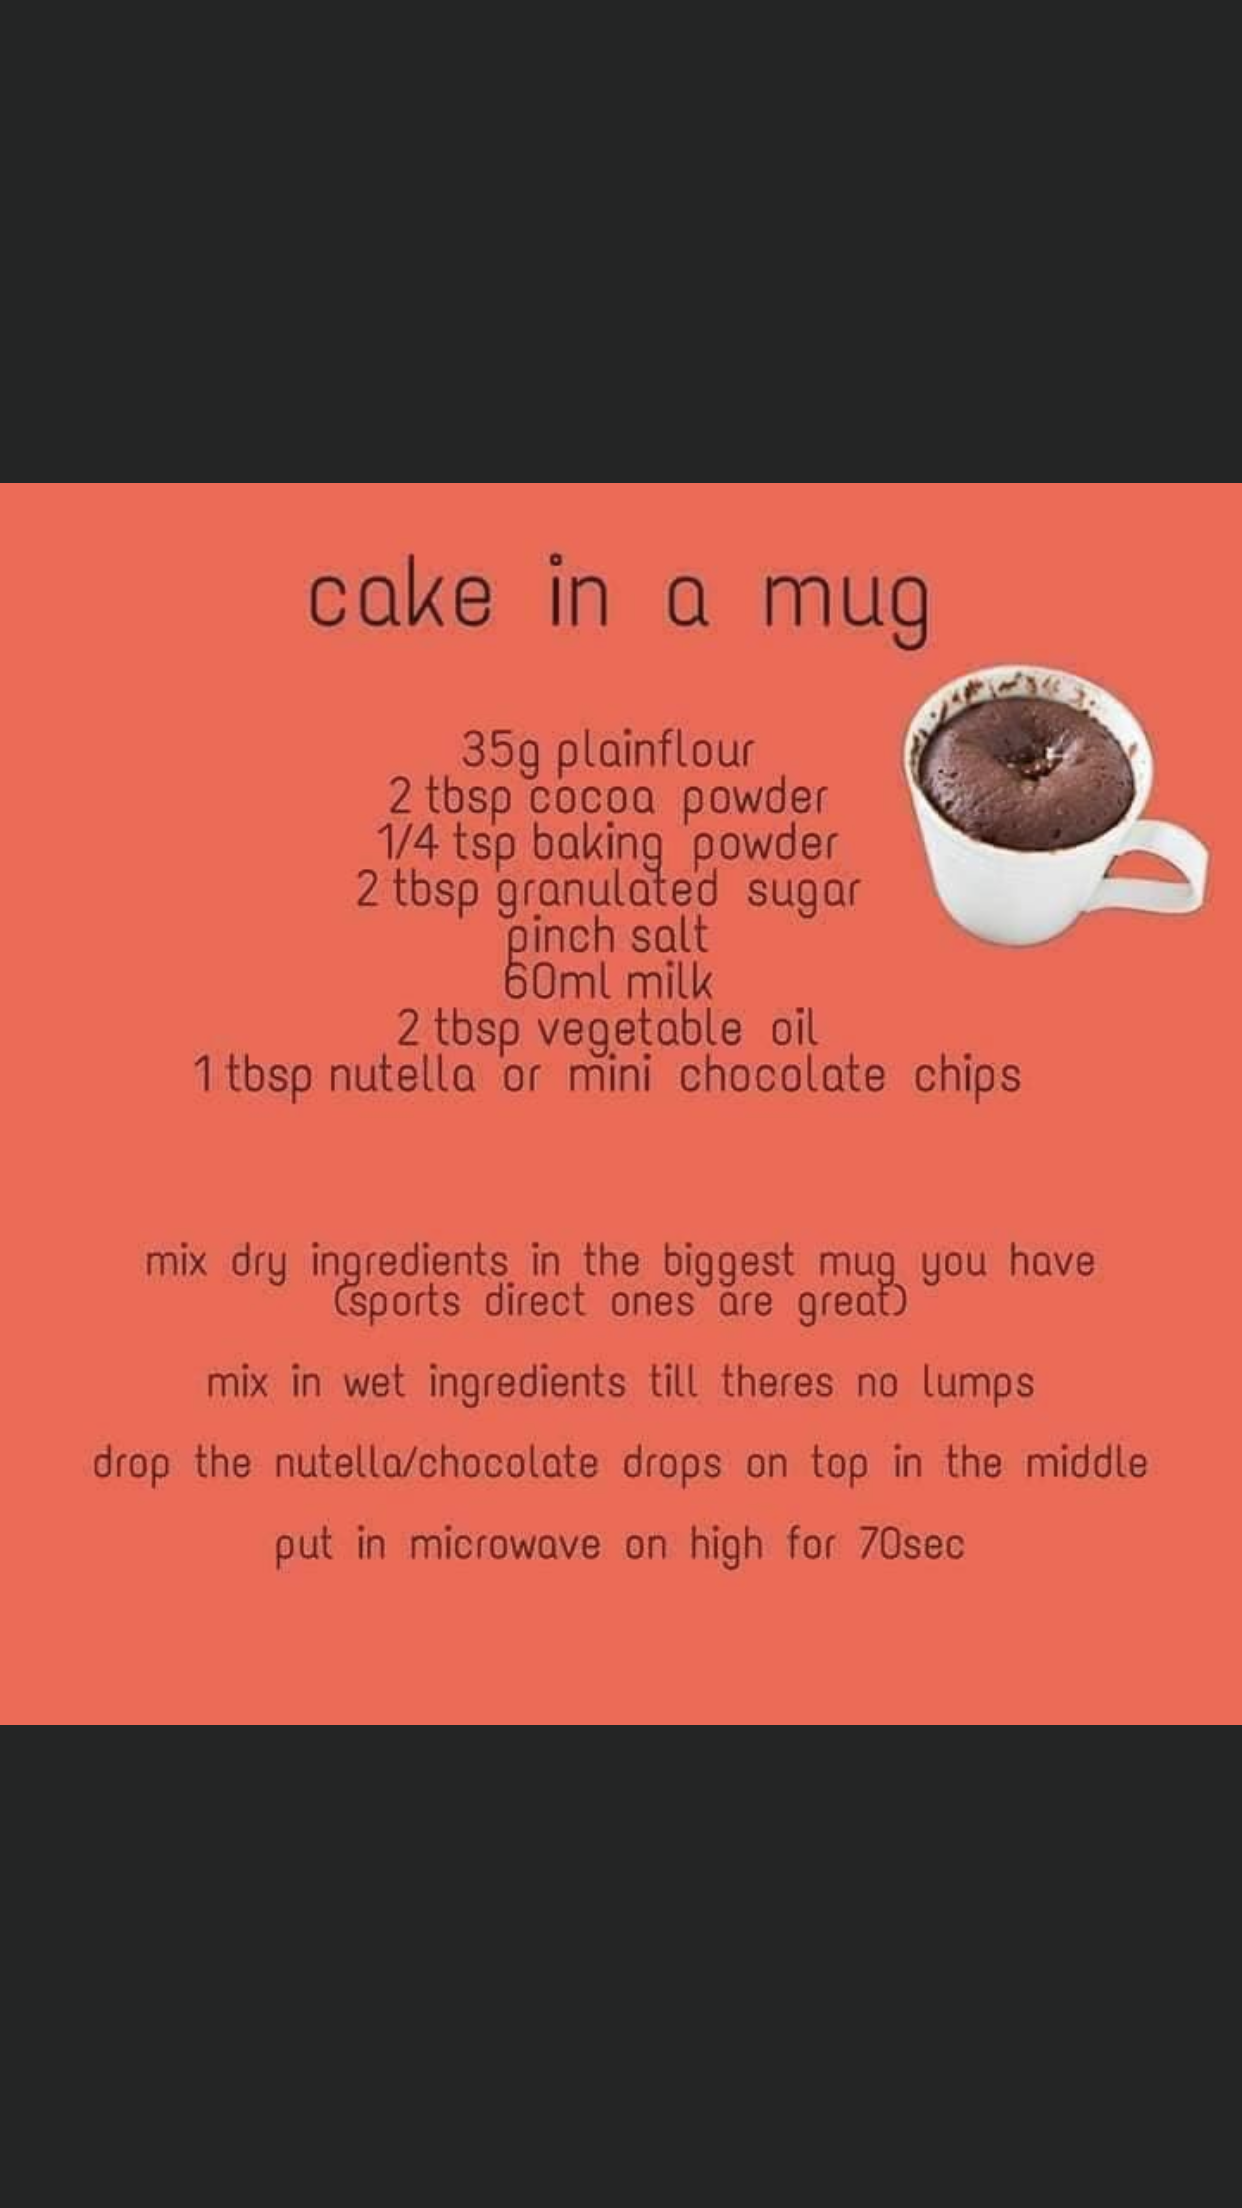 Pin by Gemma Ward on EYFS in 2020 Mini chocolate chips